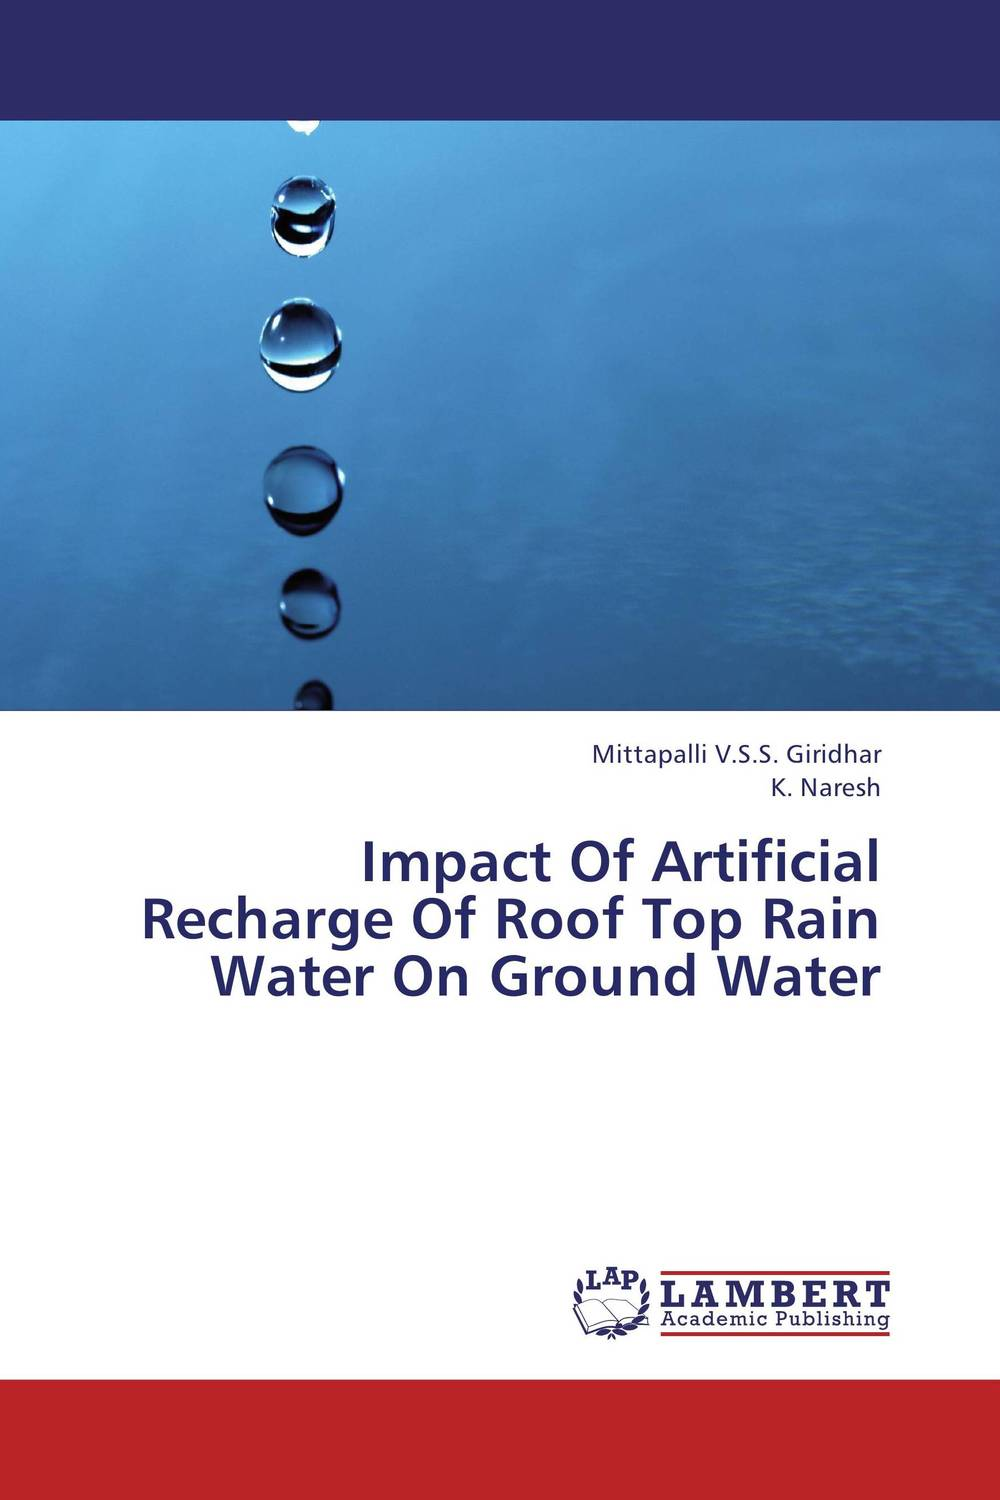 цена на Impact Of Artificial Recharge Of Roof Top Rain Water On Ground Water